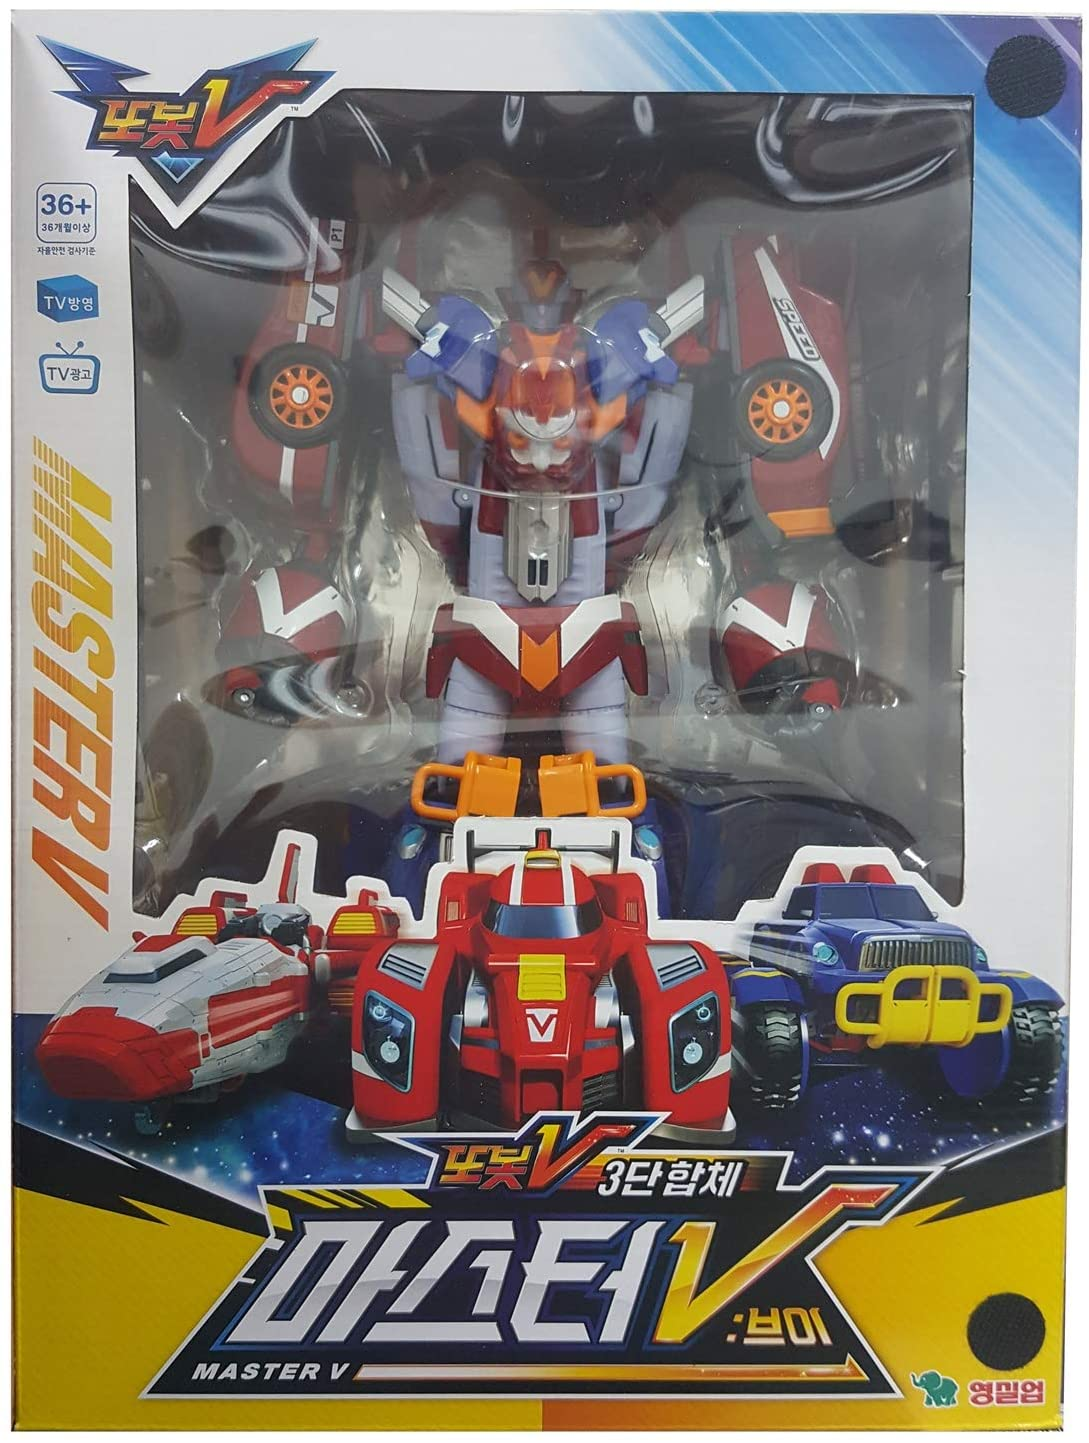 Tobot V Young Toys 3-Stage Integration Master V (Speed, Monster and Rocket) Transforming Robot Toy, Multicolored